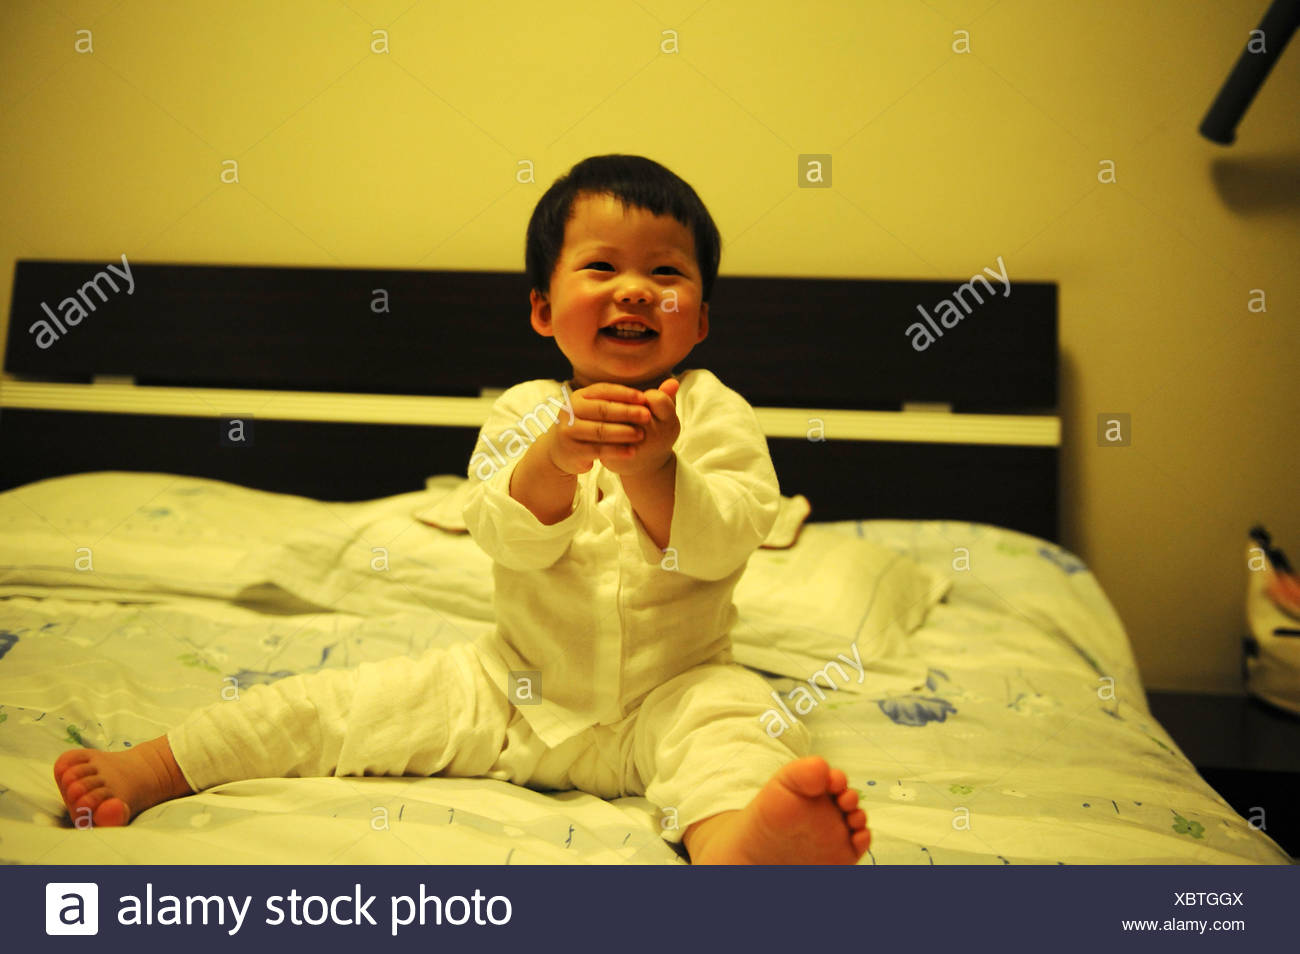 Chinese baby girl giggling on bed, Chengdu, Sichuan Province, China - Stock Image